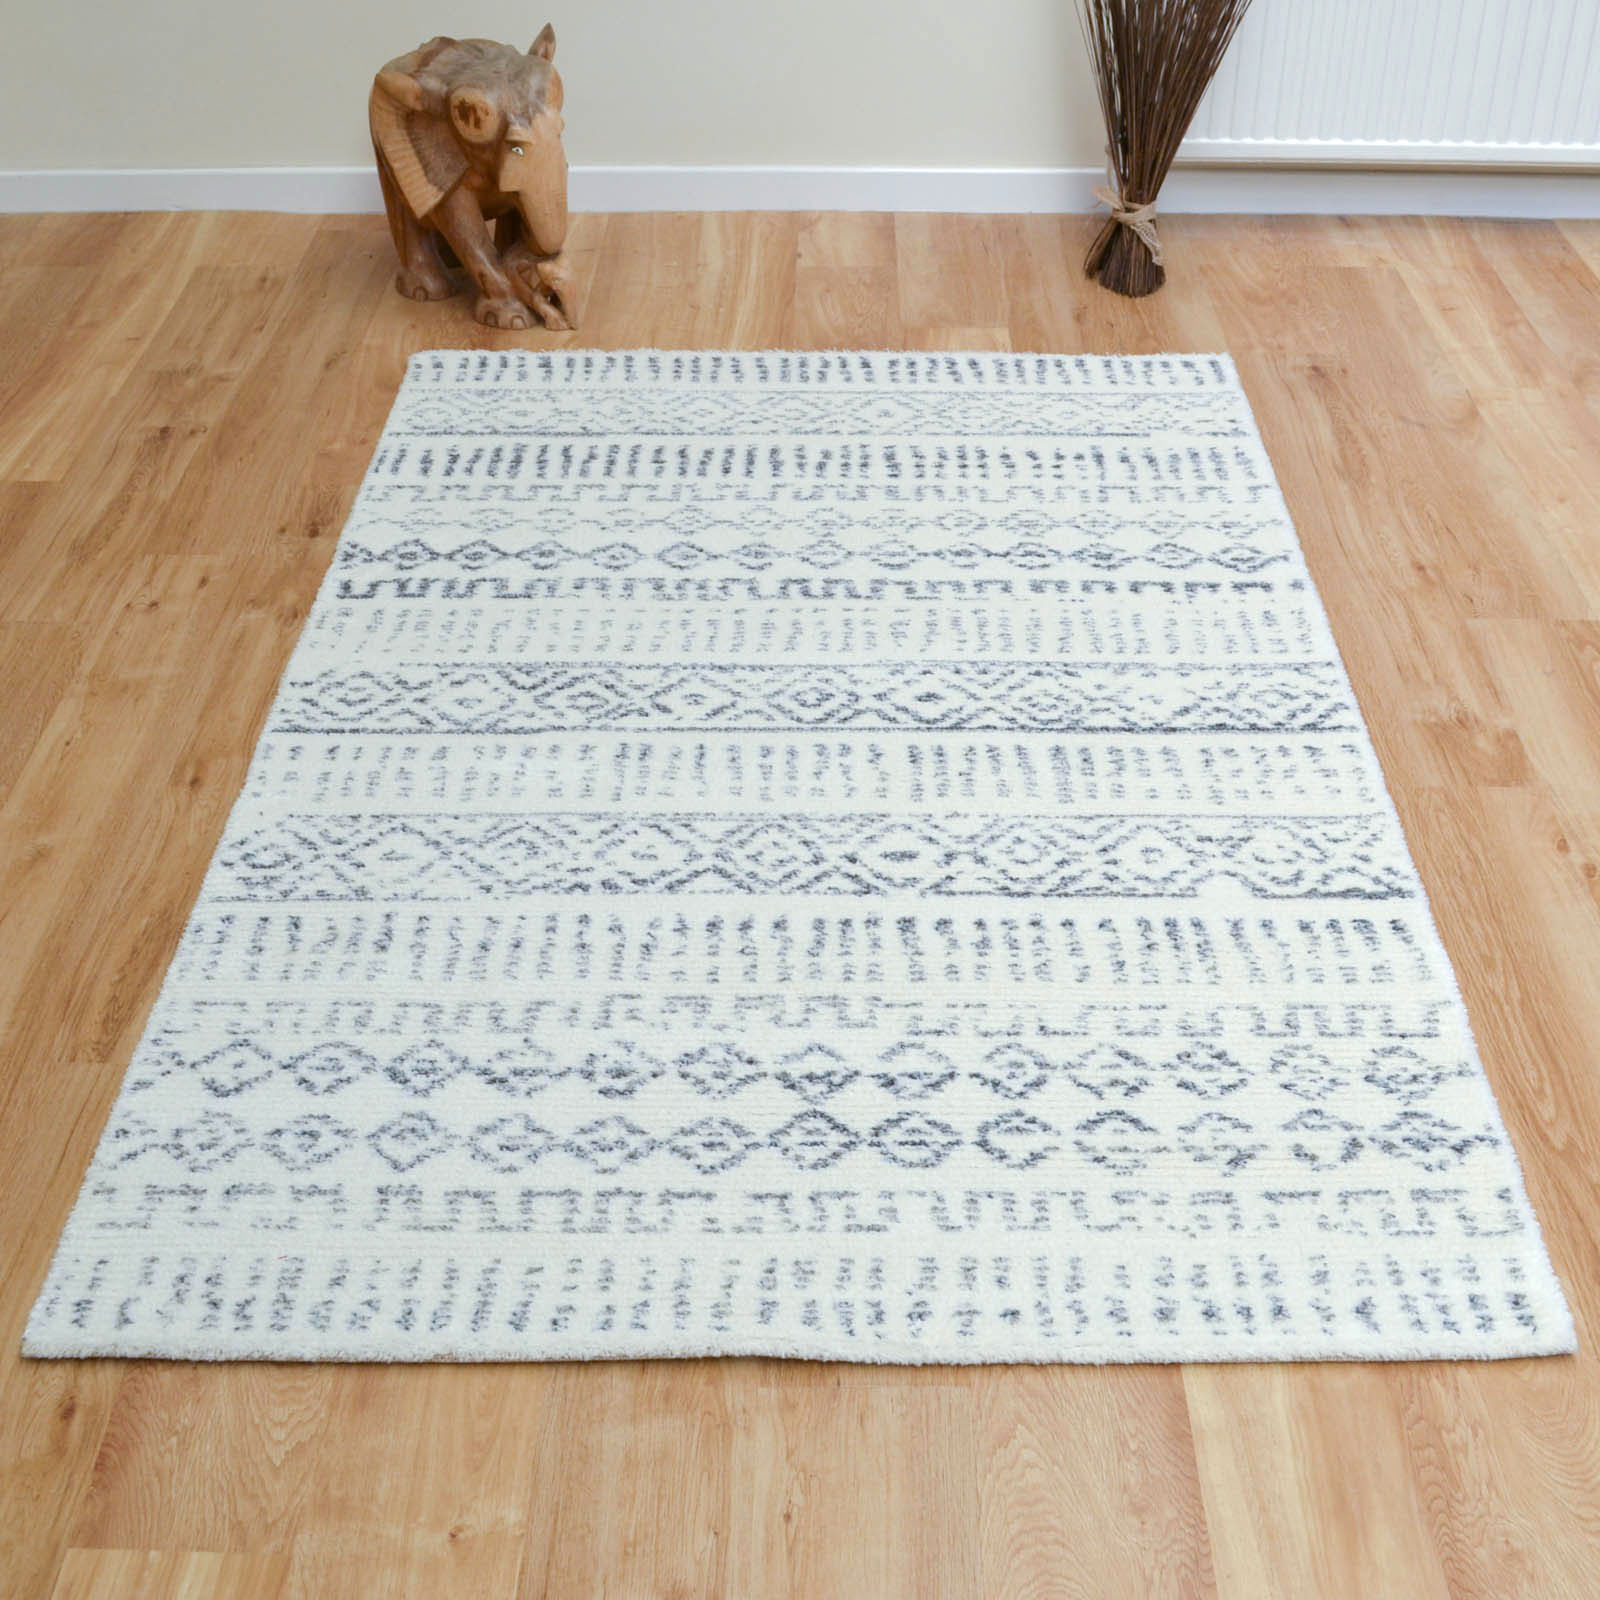 Chelsea Rugs 2205 102 in Ivory and Grey